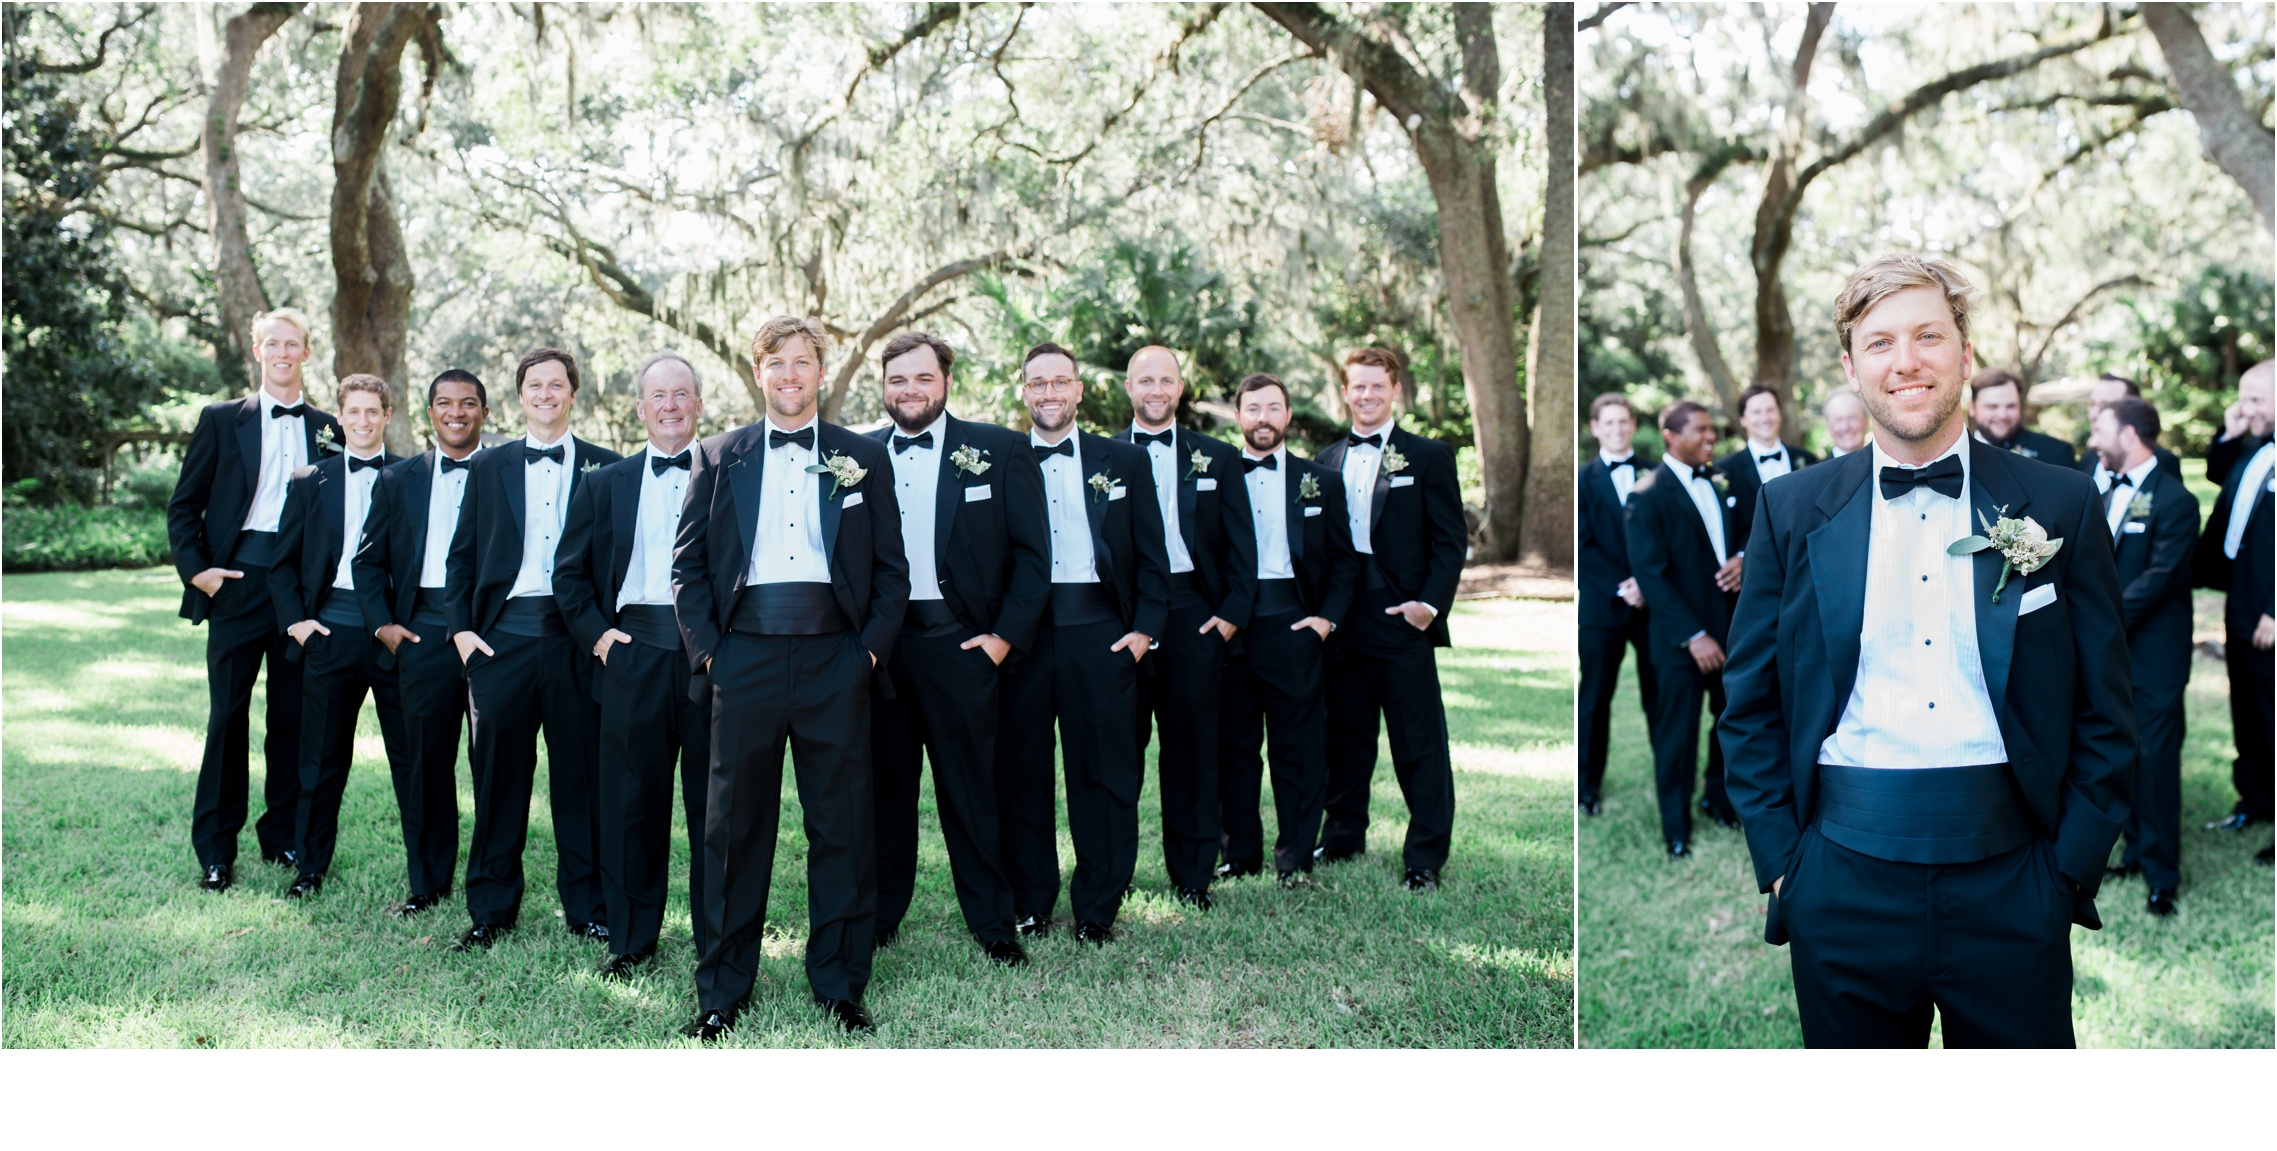 Rainey_Gregg_Photography_St._Simons_Island_Georgia_California_Wedding_Portrait_Photography_0050.jpg